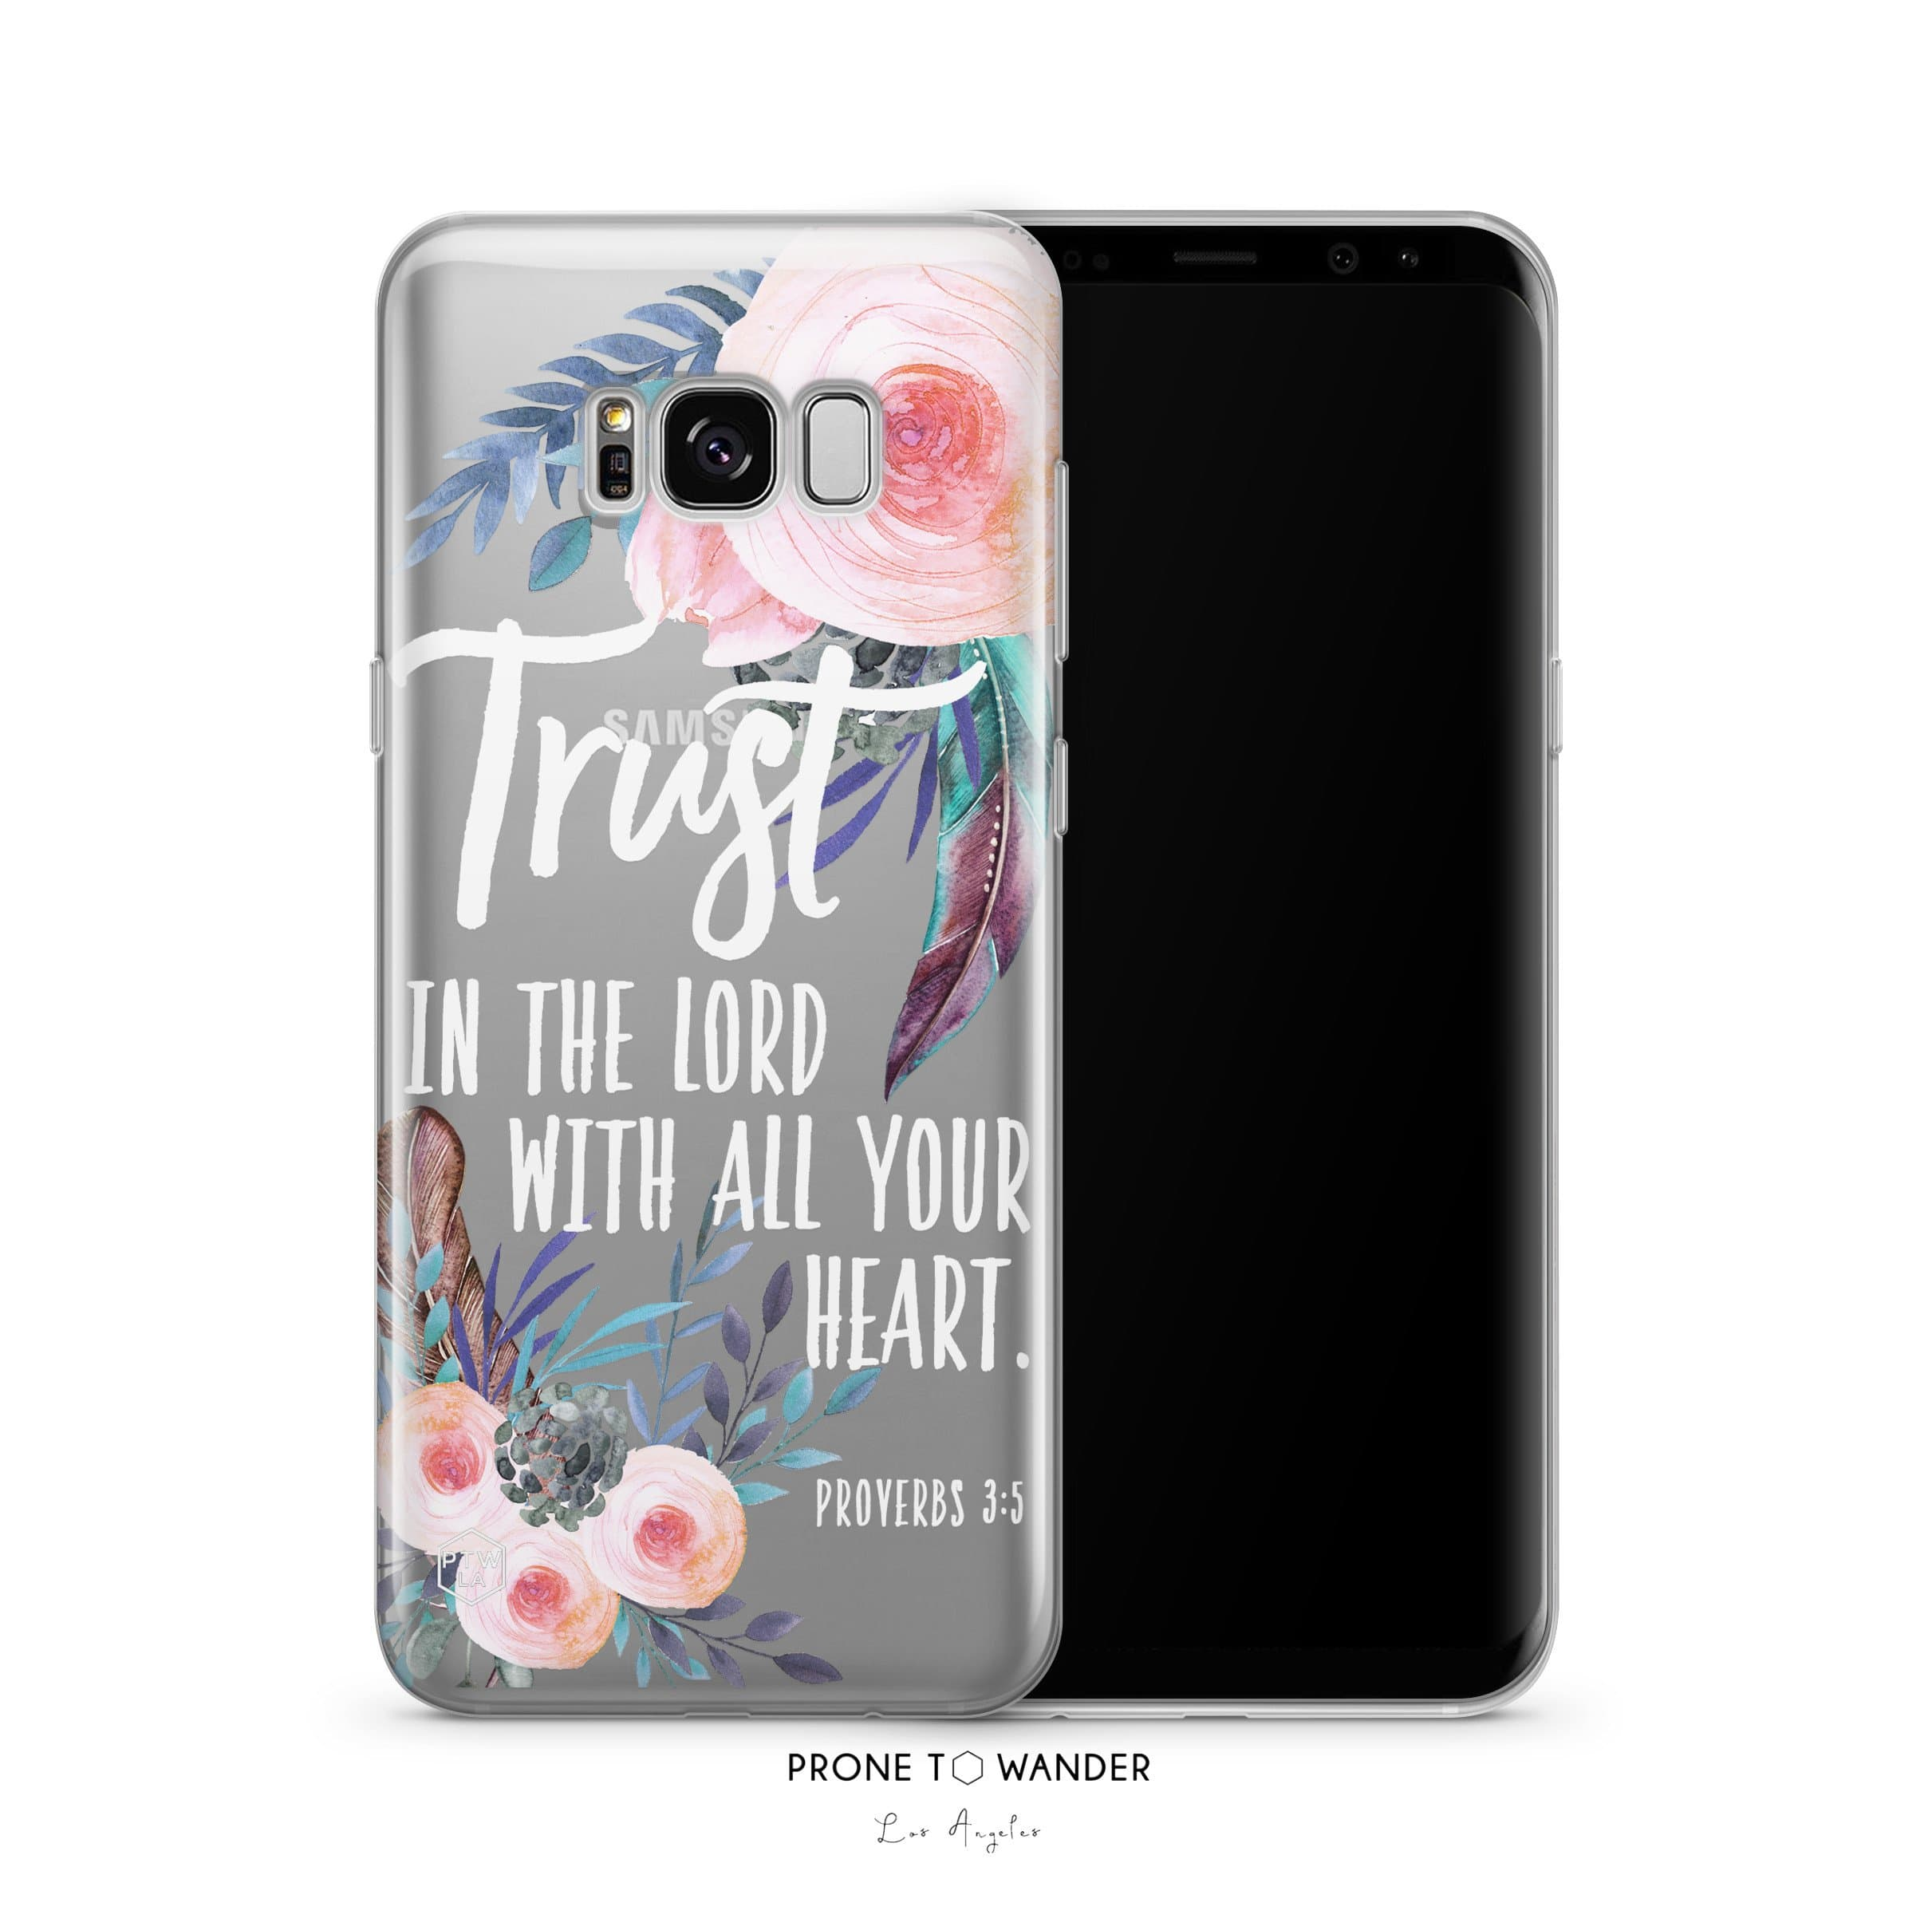 SAMSUNG H193 -TRUST IN THE LORD IN FLORAL BOHO - White Bible Verse Christian Quote Phone Covers